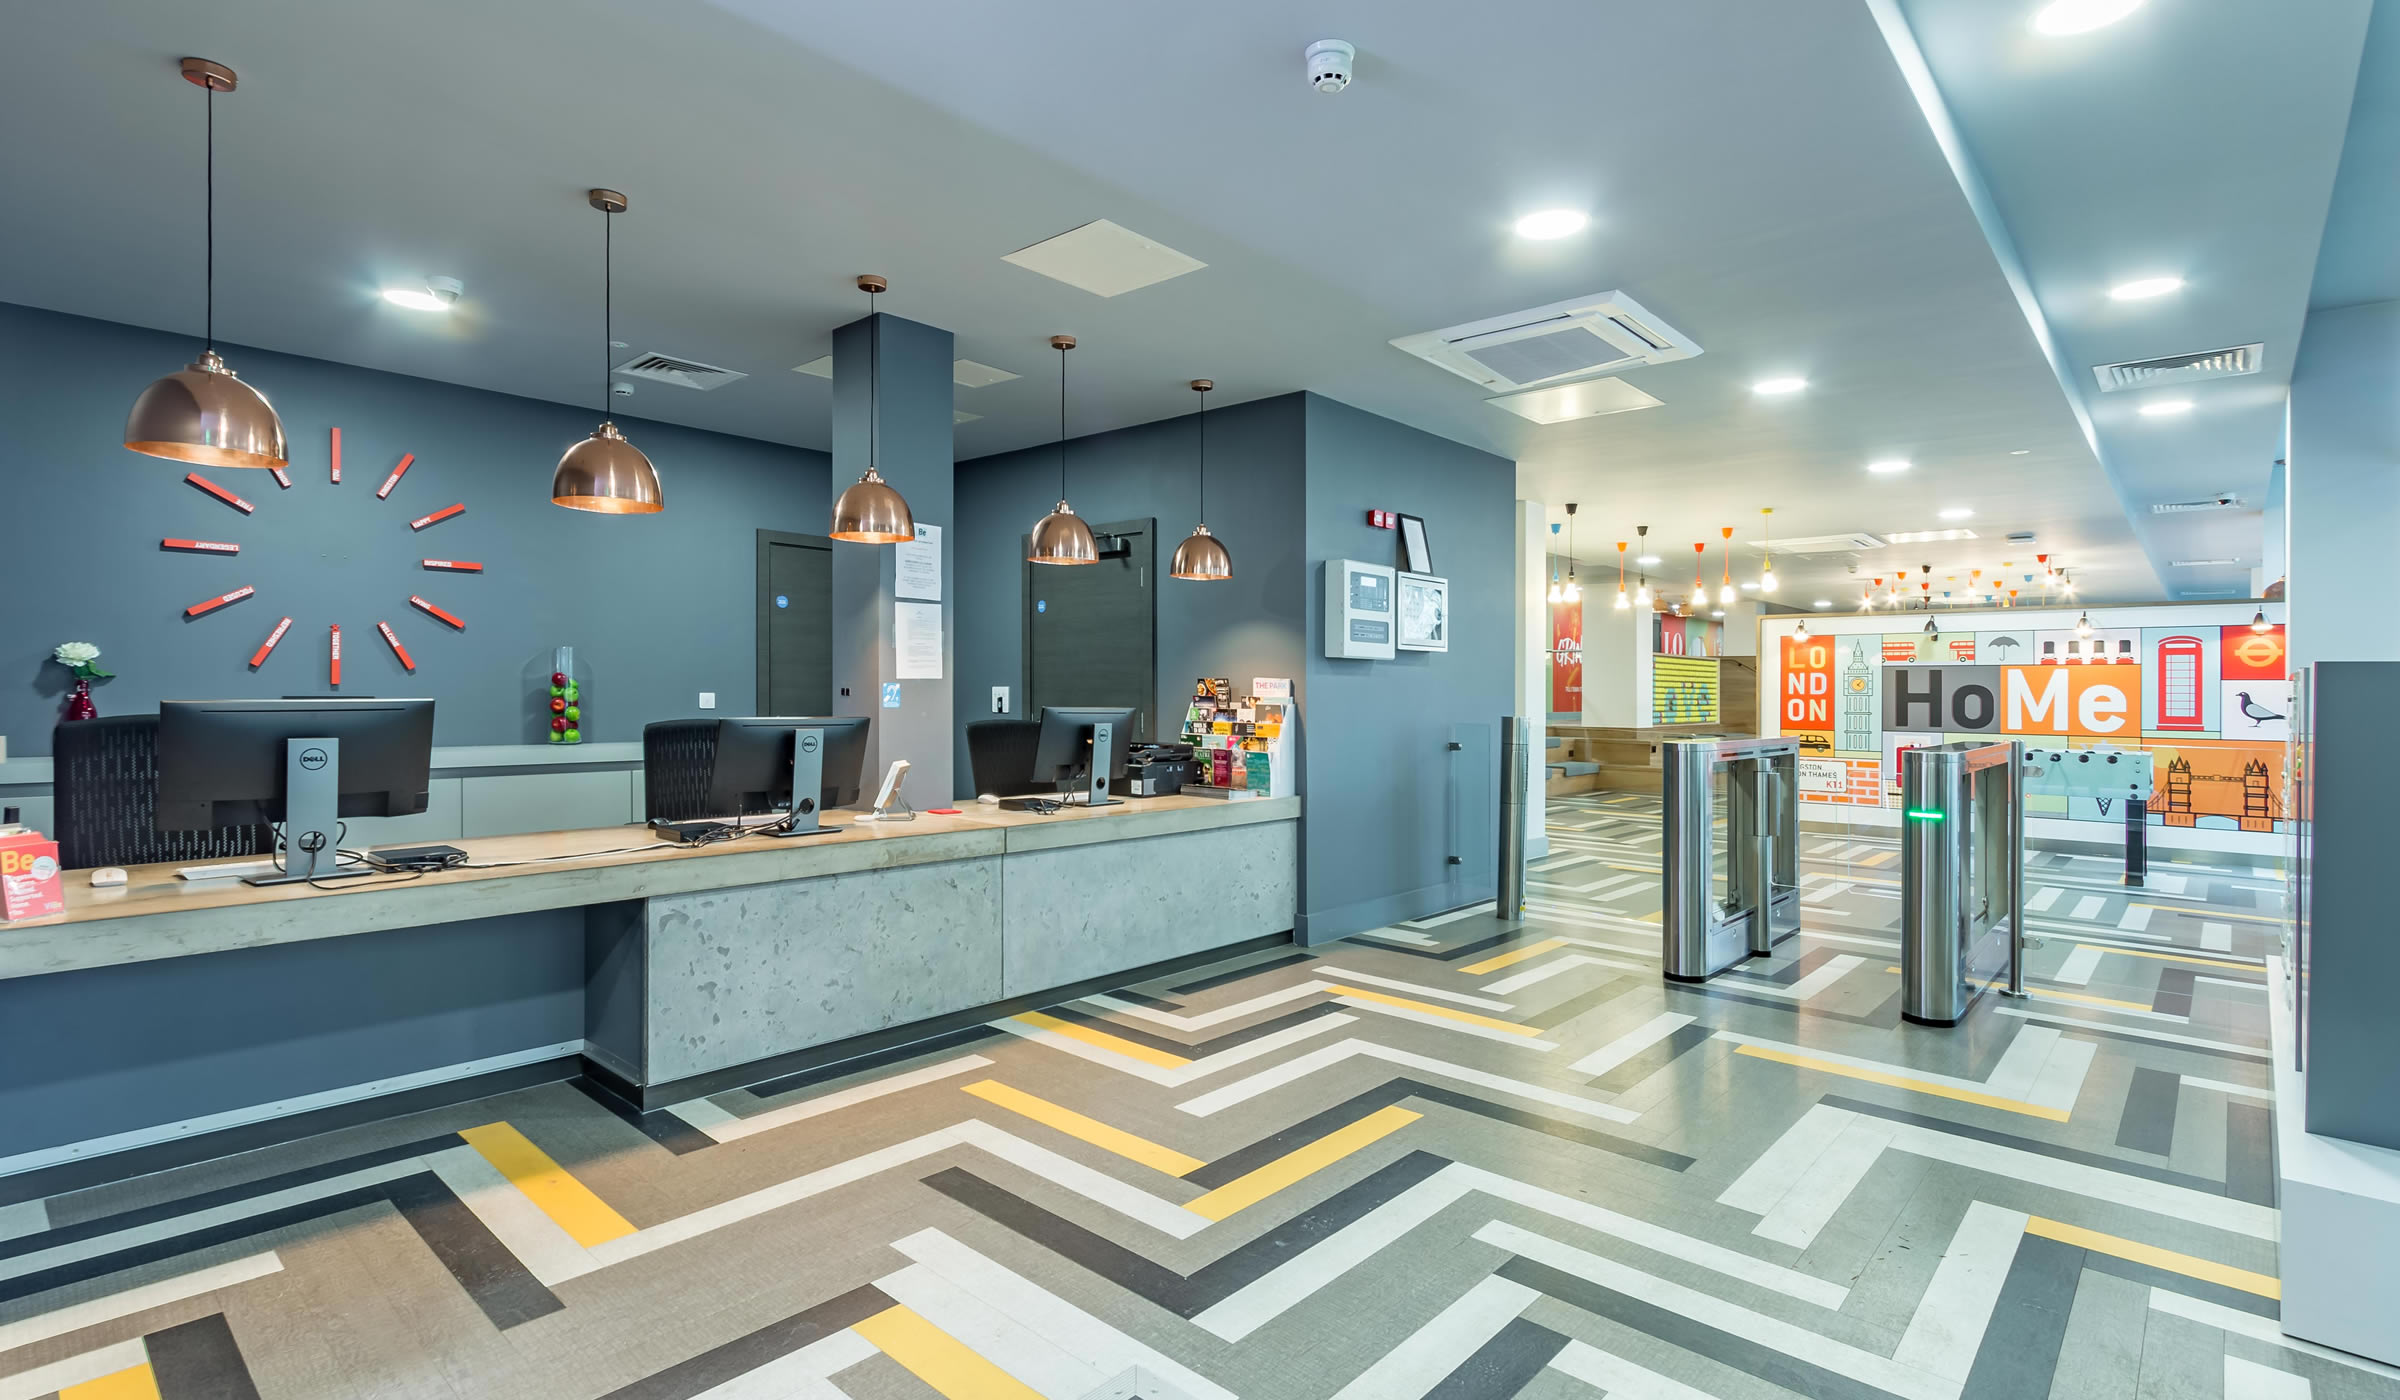 Vibe student accommodation reception area